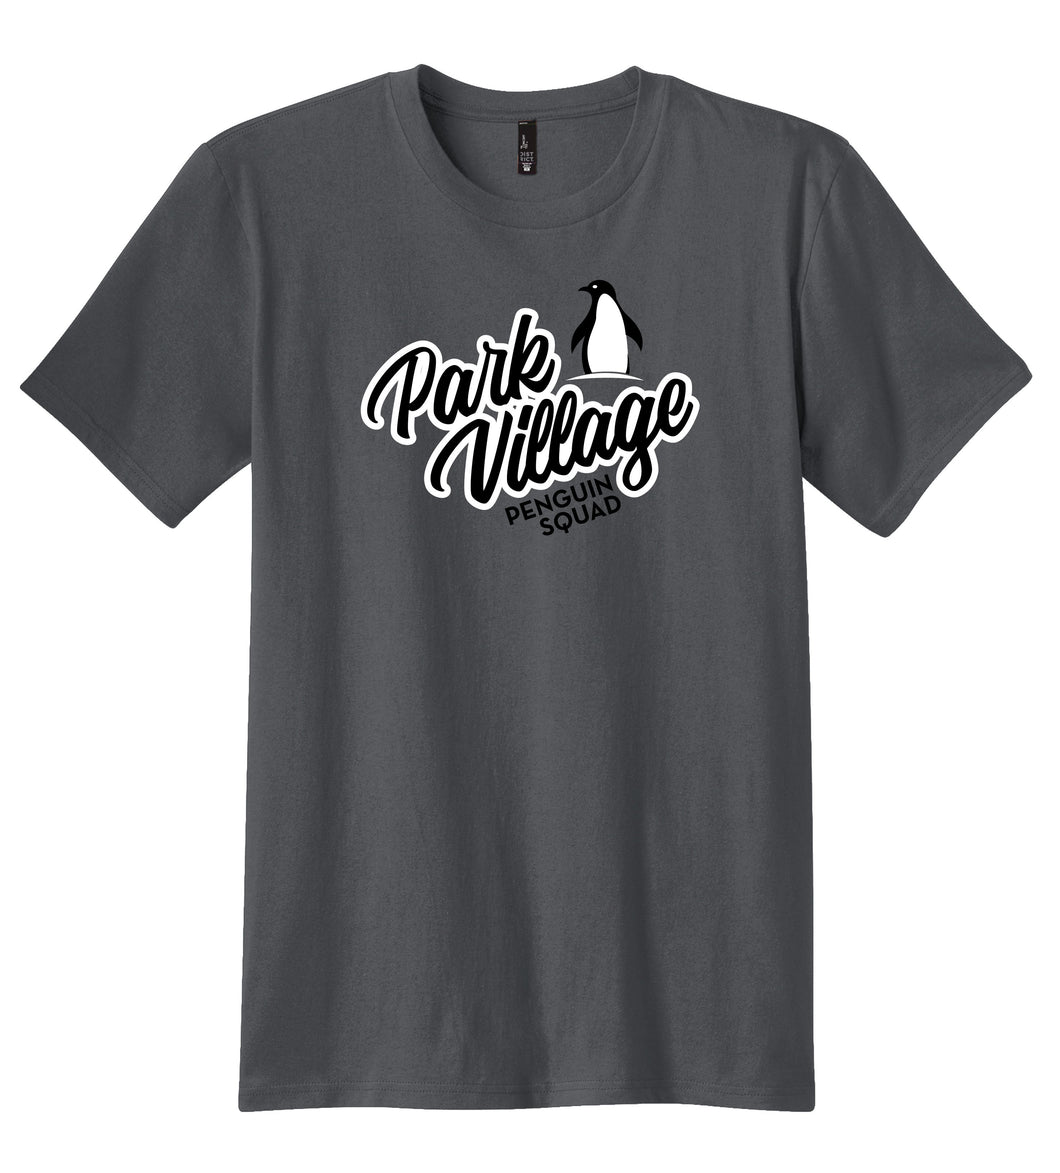 PARK VILLAGE SQUAD DESIGN T-SHIRT - CHARCOAL